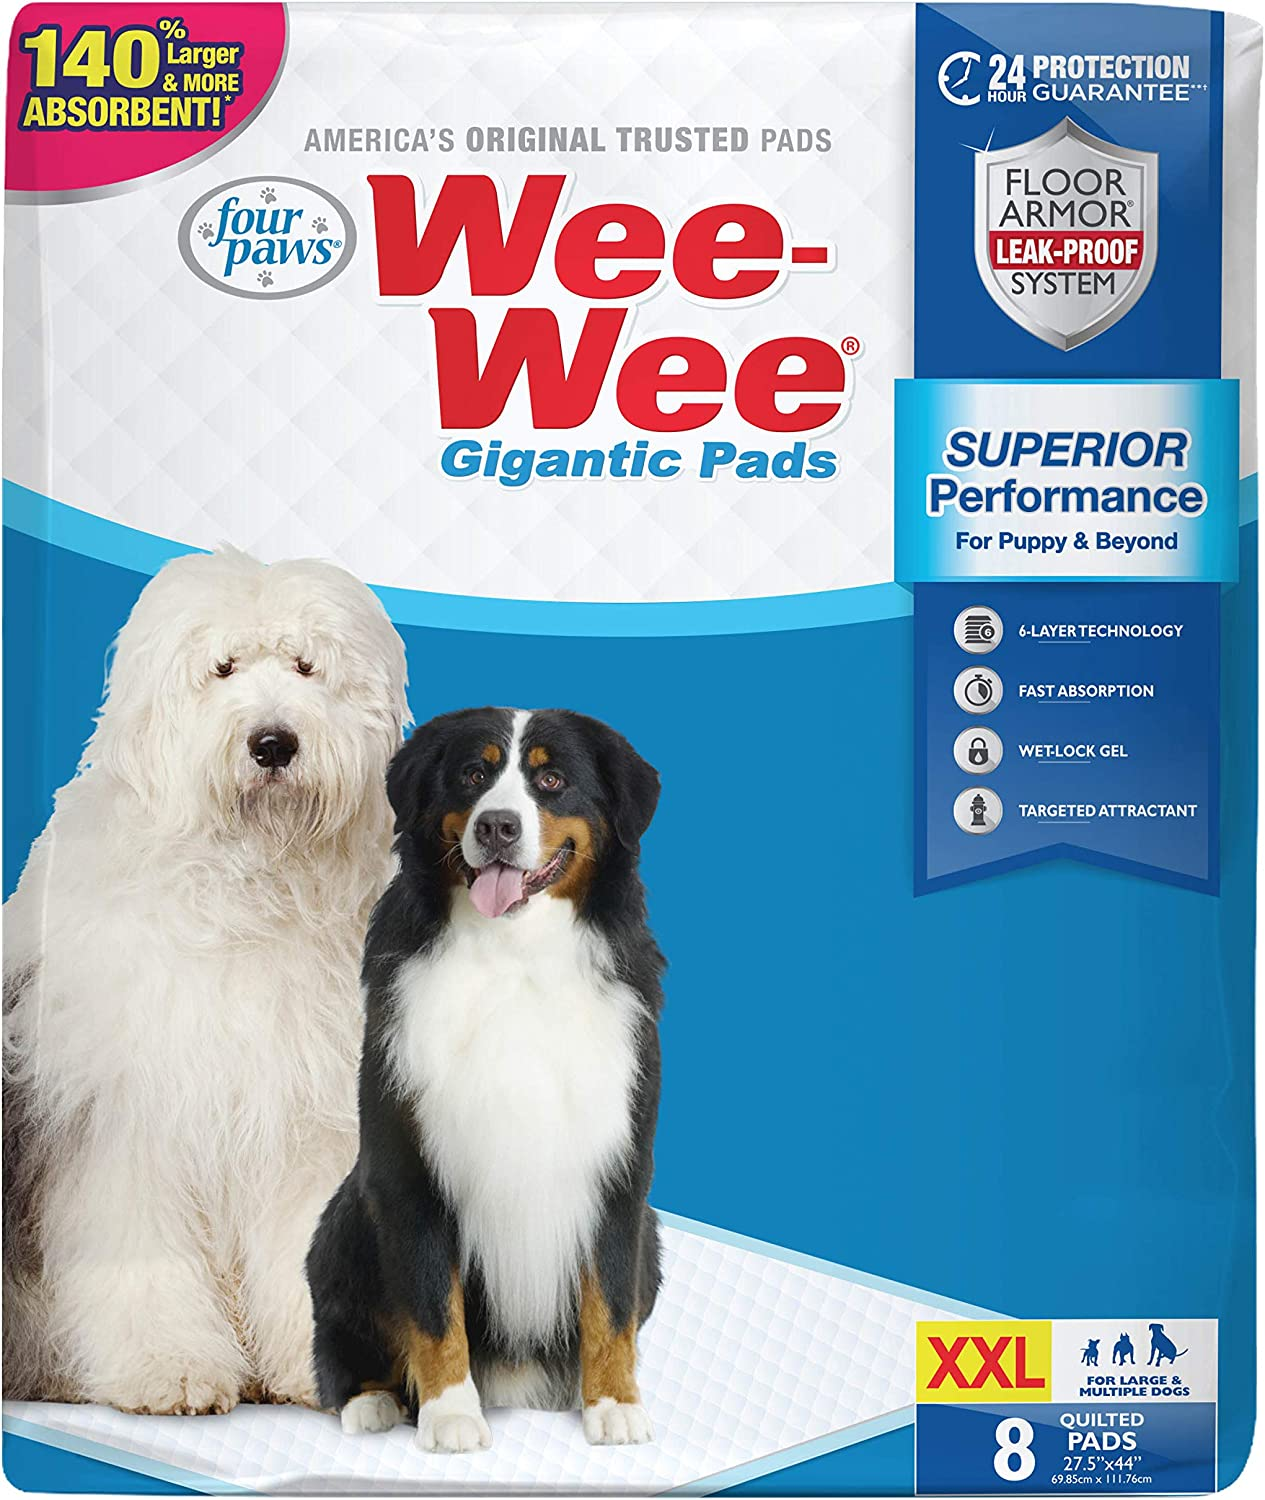 Four Paws Wee-Wee Puppy Training Gigantic Pee Free shipping on Large-scale sale posting reviews 27.5